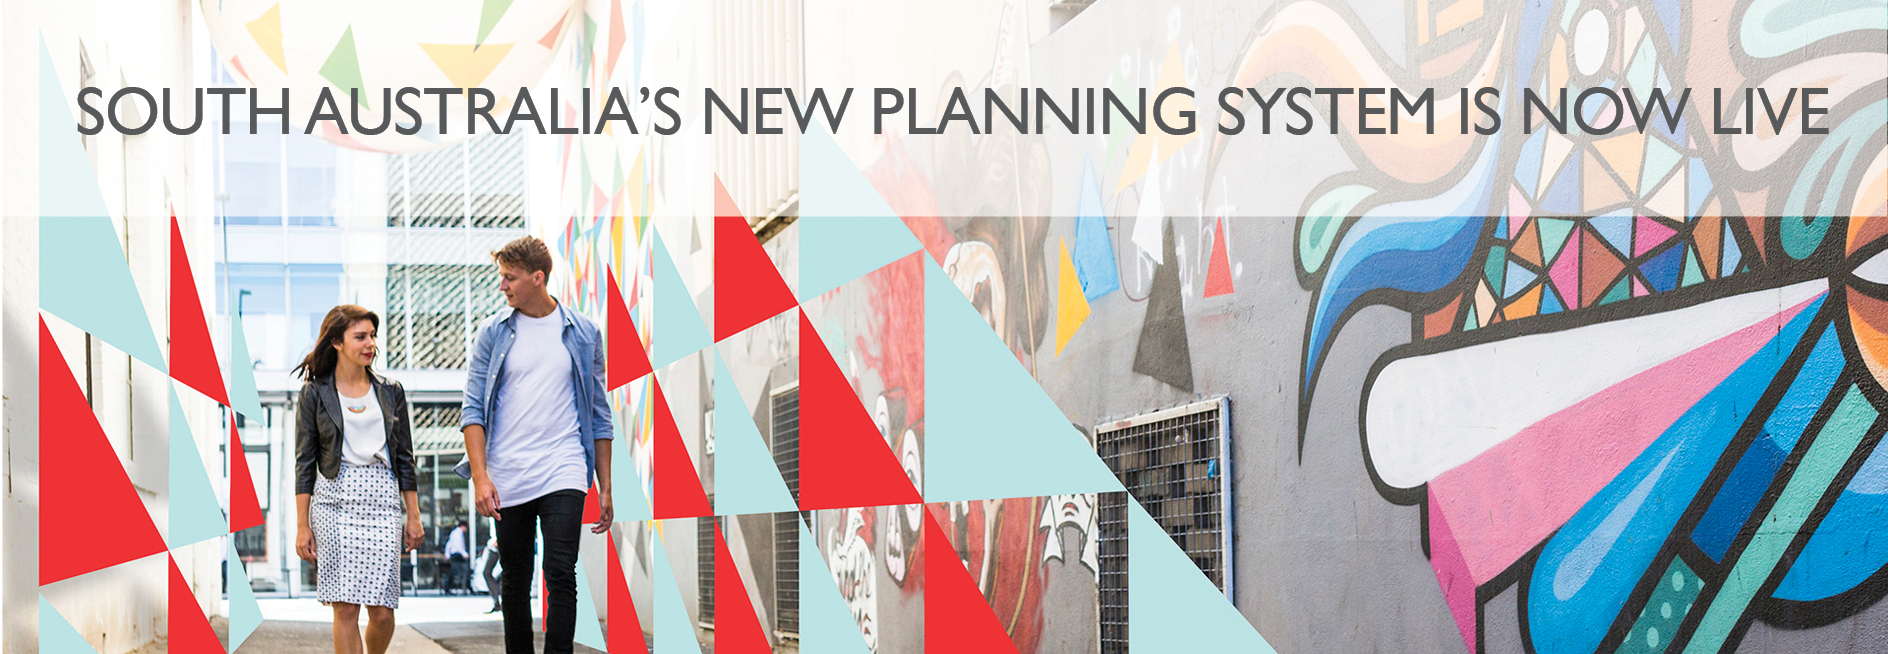 SA Planning System launch banner